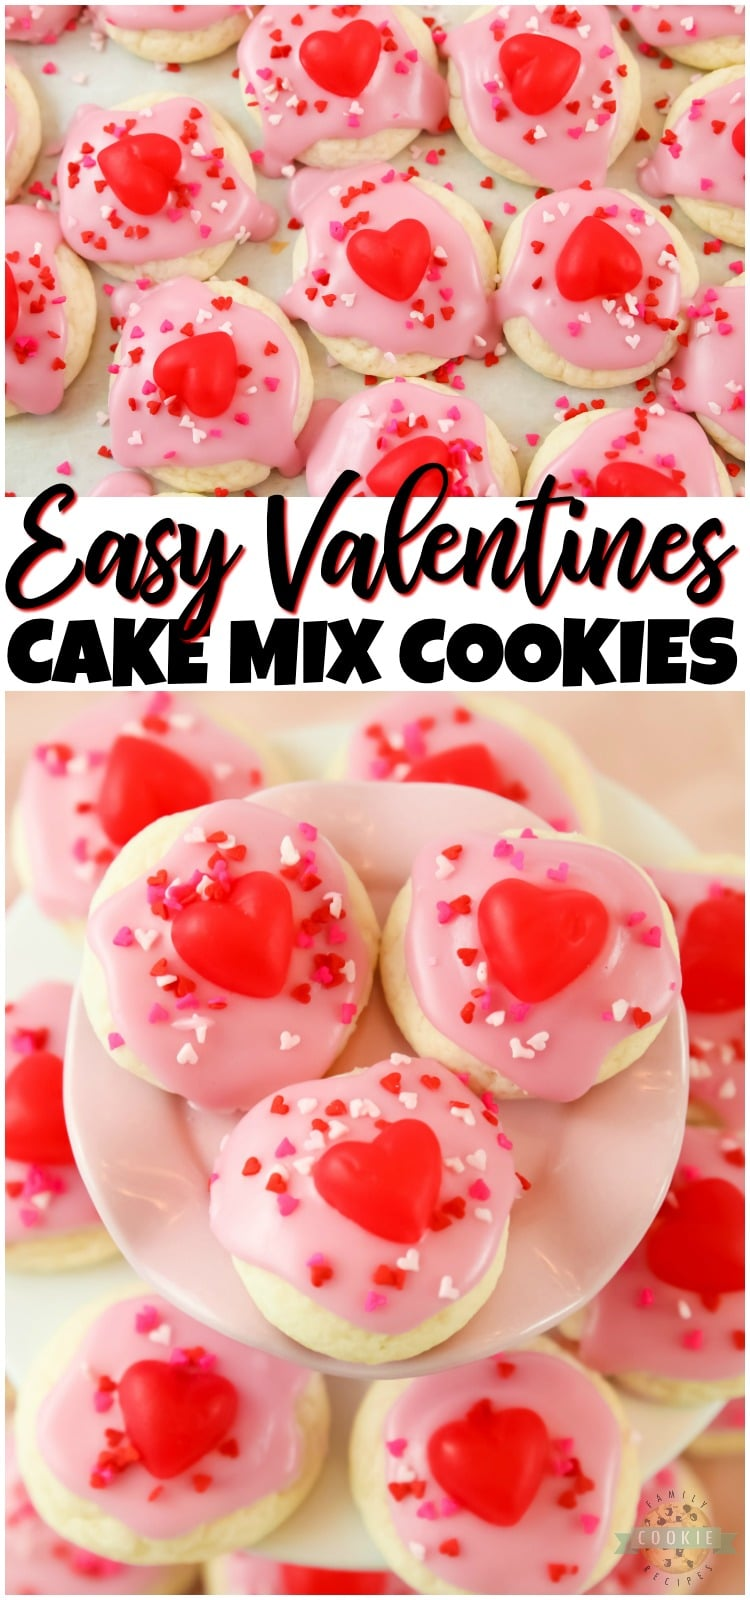 Valentines Cake Mix Cookies made with just 3 ingredients in under 30 minutes! Quick & Easy Valentines dessert recipe for your special someone! #Valentines #cookies #baking #frosting #sprinkles #ValentinesDay #recipe from FAMILY COOKIE RECIPES